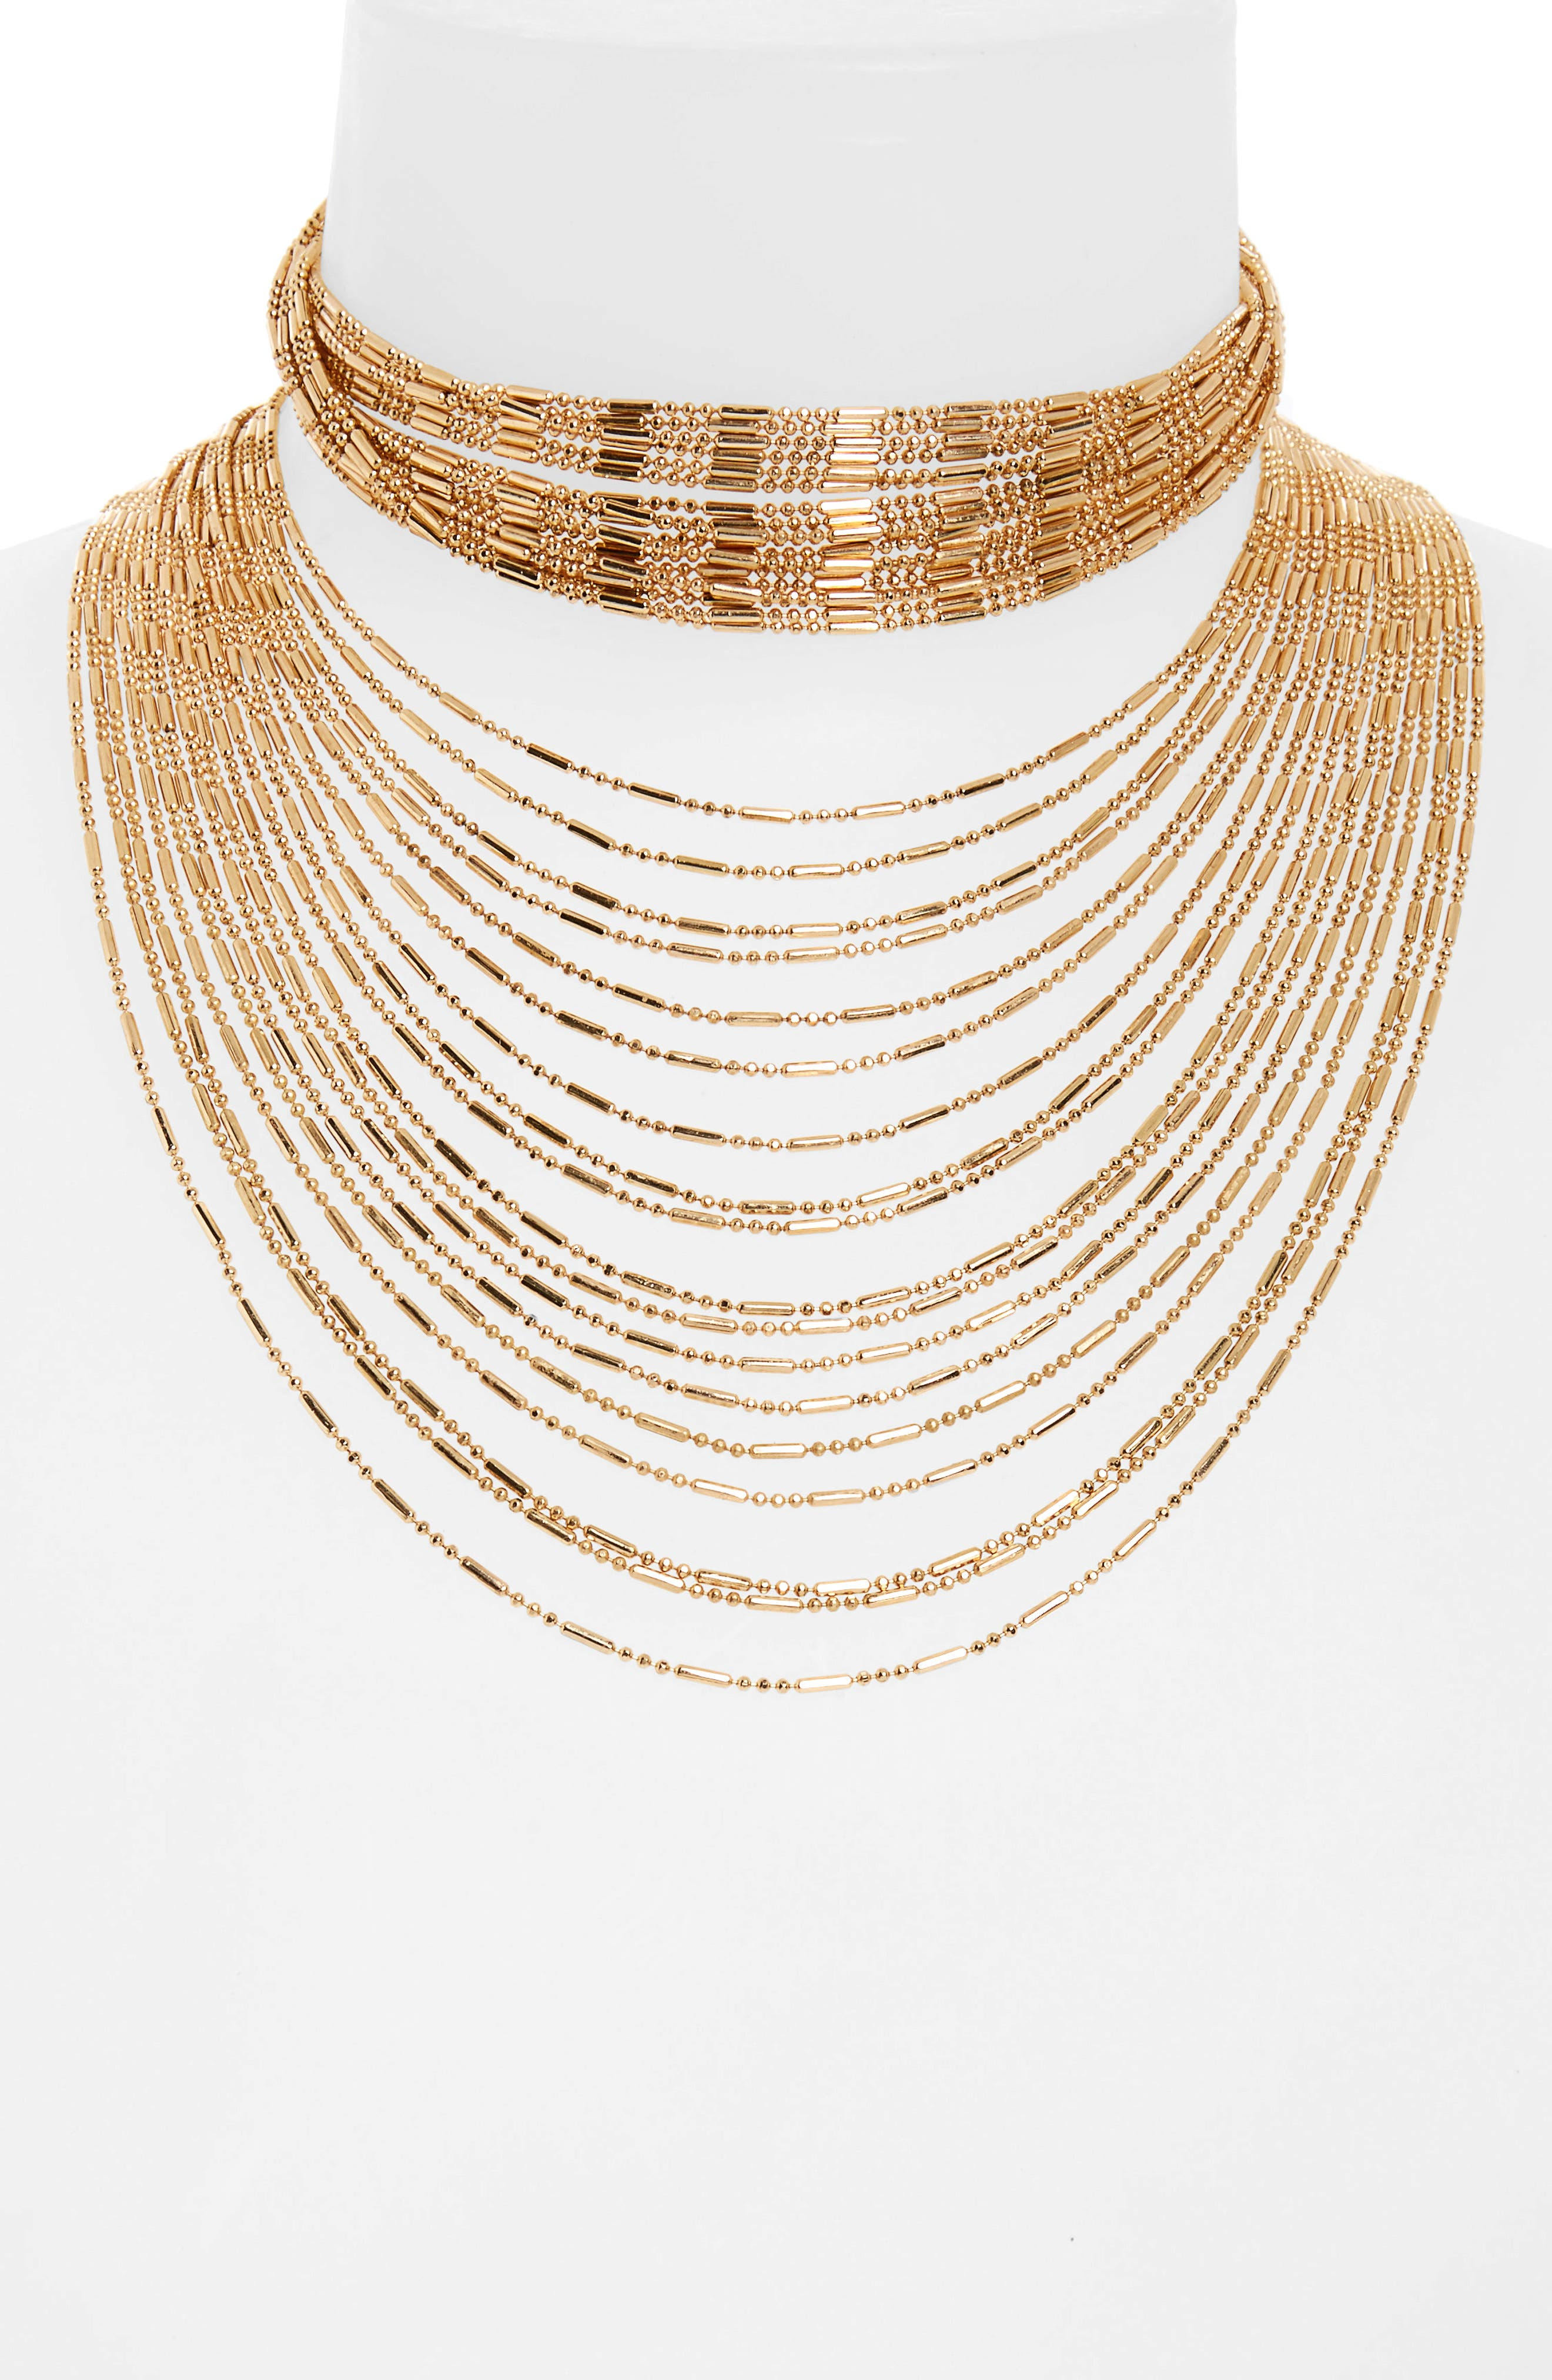 PANACEA Multistrand Statement Necklace